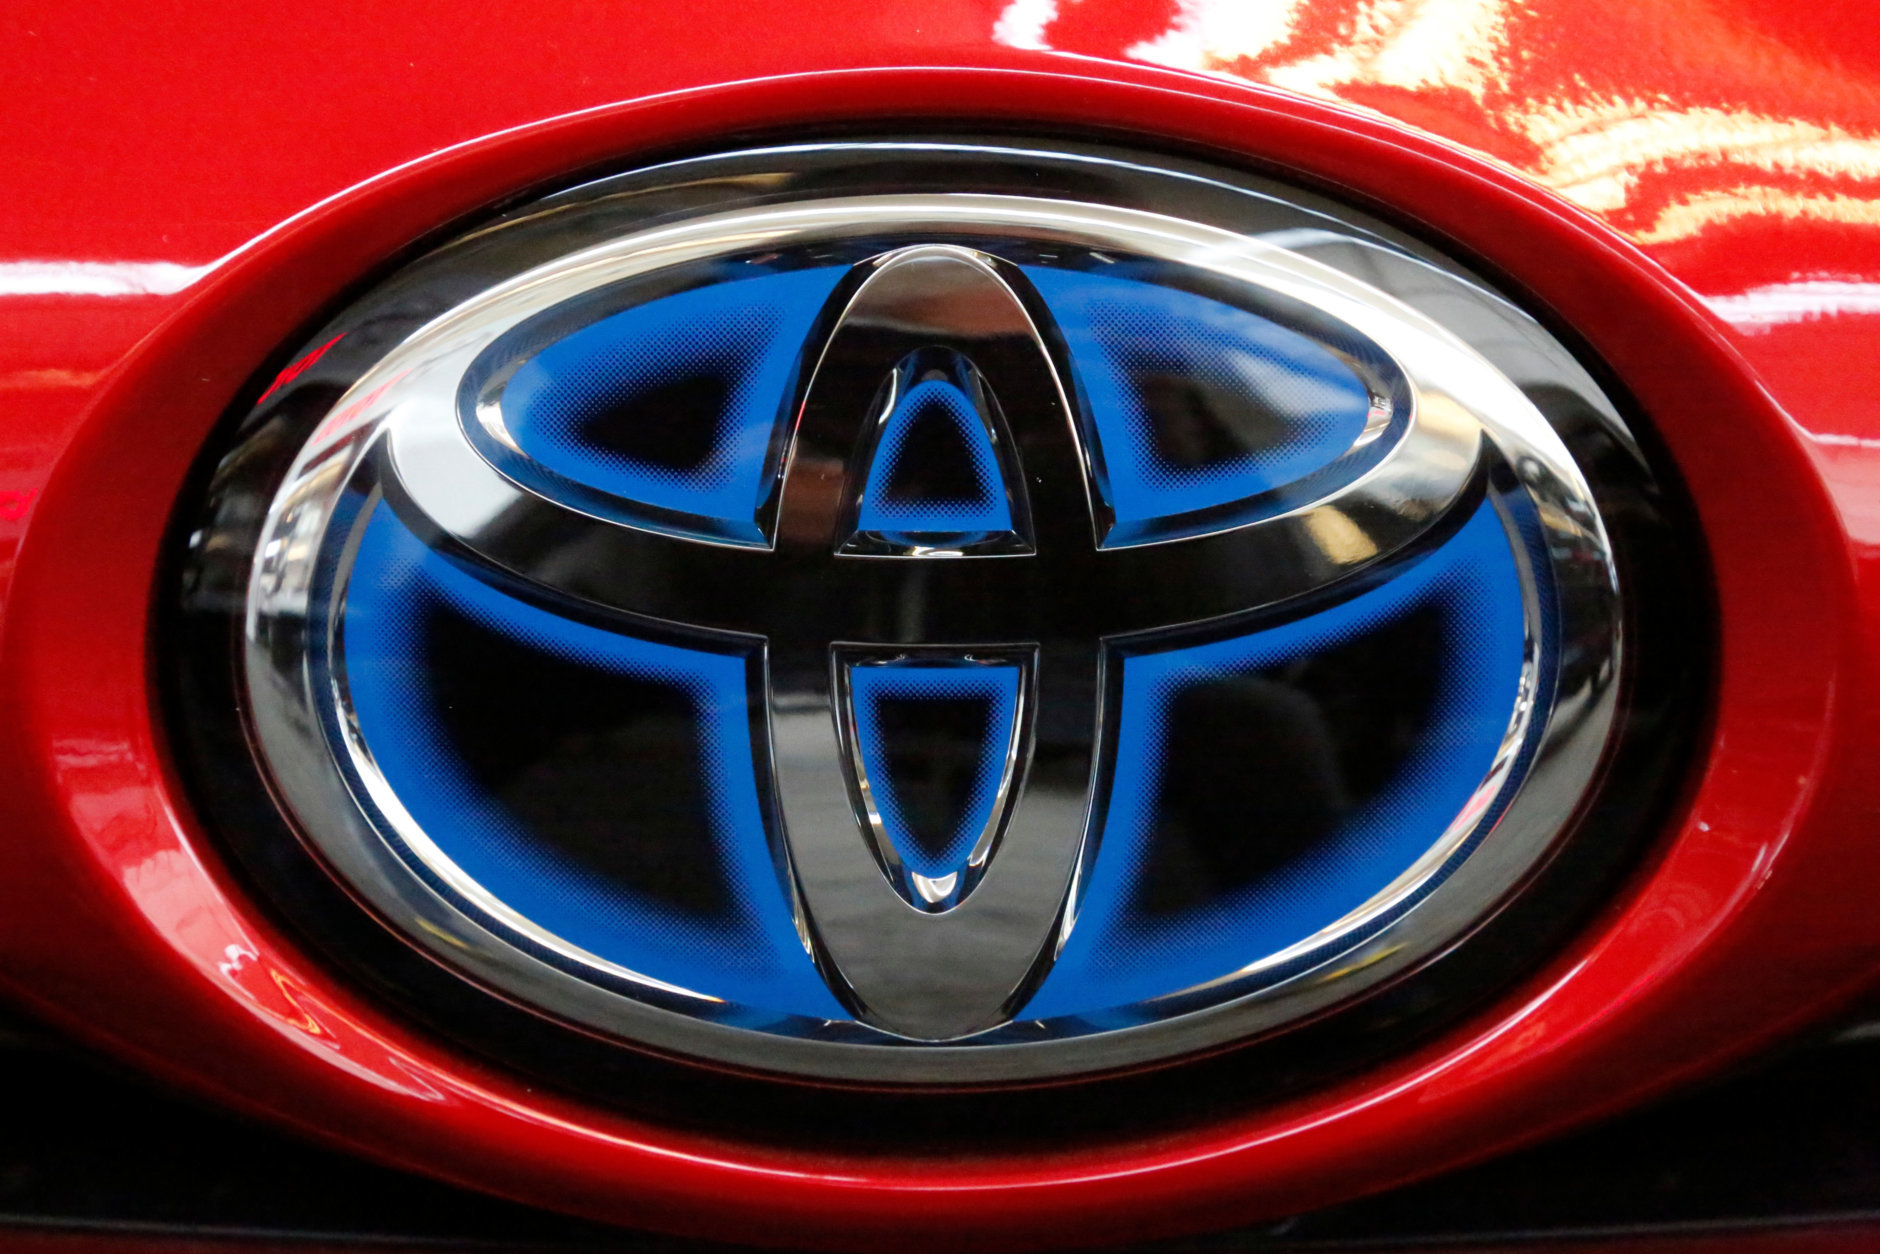 The Toyota Camry from 2017 is NO. 5 most stolen vehicles over all. FILE- This Feb. 15, 2018, file photo shows the Toyota logo on the trunk of a 2018 Toyota Prius on display at the Pittsburgh Auto Show. Toyota Motor Corp. is reporting its quarterly profit rose 21 percent as cost cuts and booming sales in some markets offset the damage from higher U.S. incentives.  Toyota, which makes the Camry sedan, Prius hybrid and Lexus luxury models, reported Wednesday, May 9, 2018,  January-March profit of 480.8 billion yen ($4.4 billion), up from 398 billion yen the same quarter the previous year. (AP Photo/Gene J. Puskar, File)